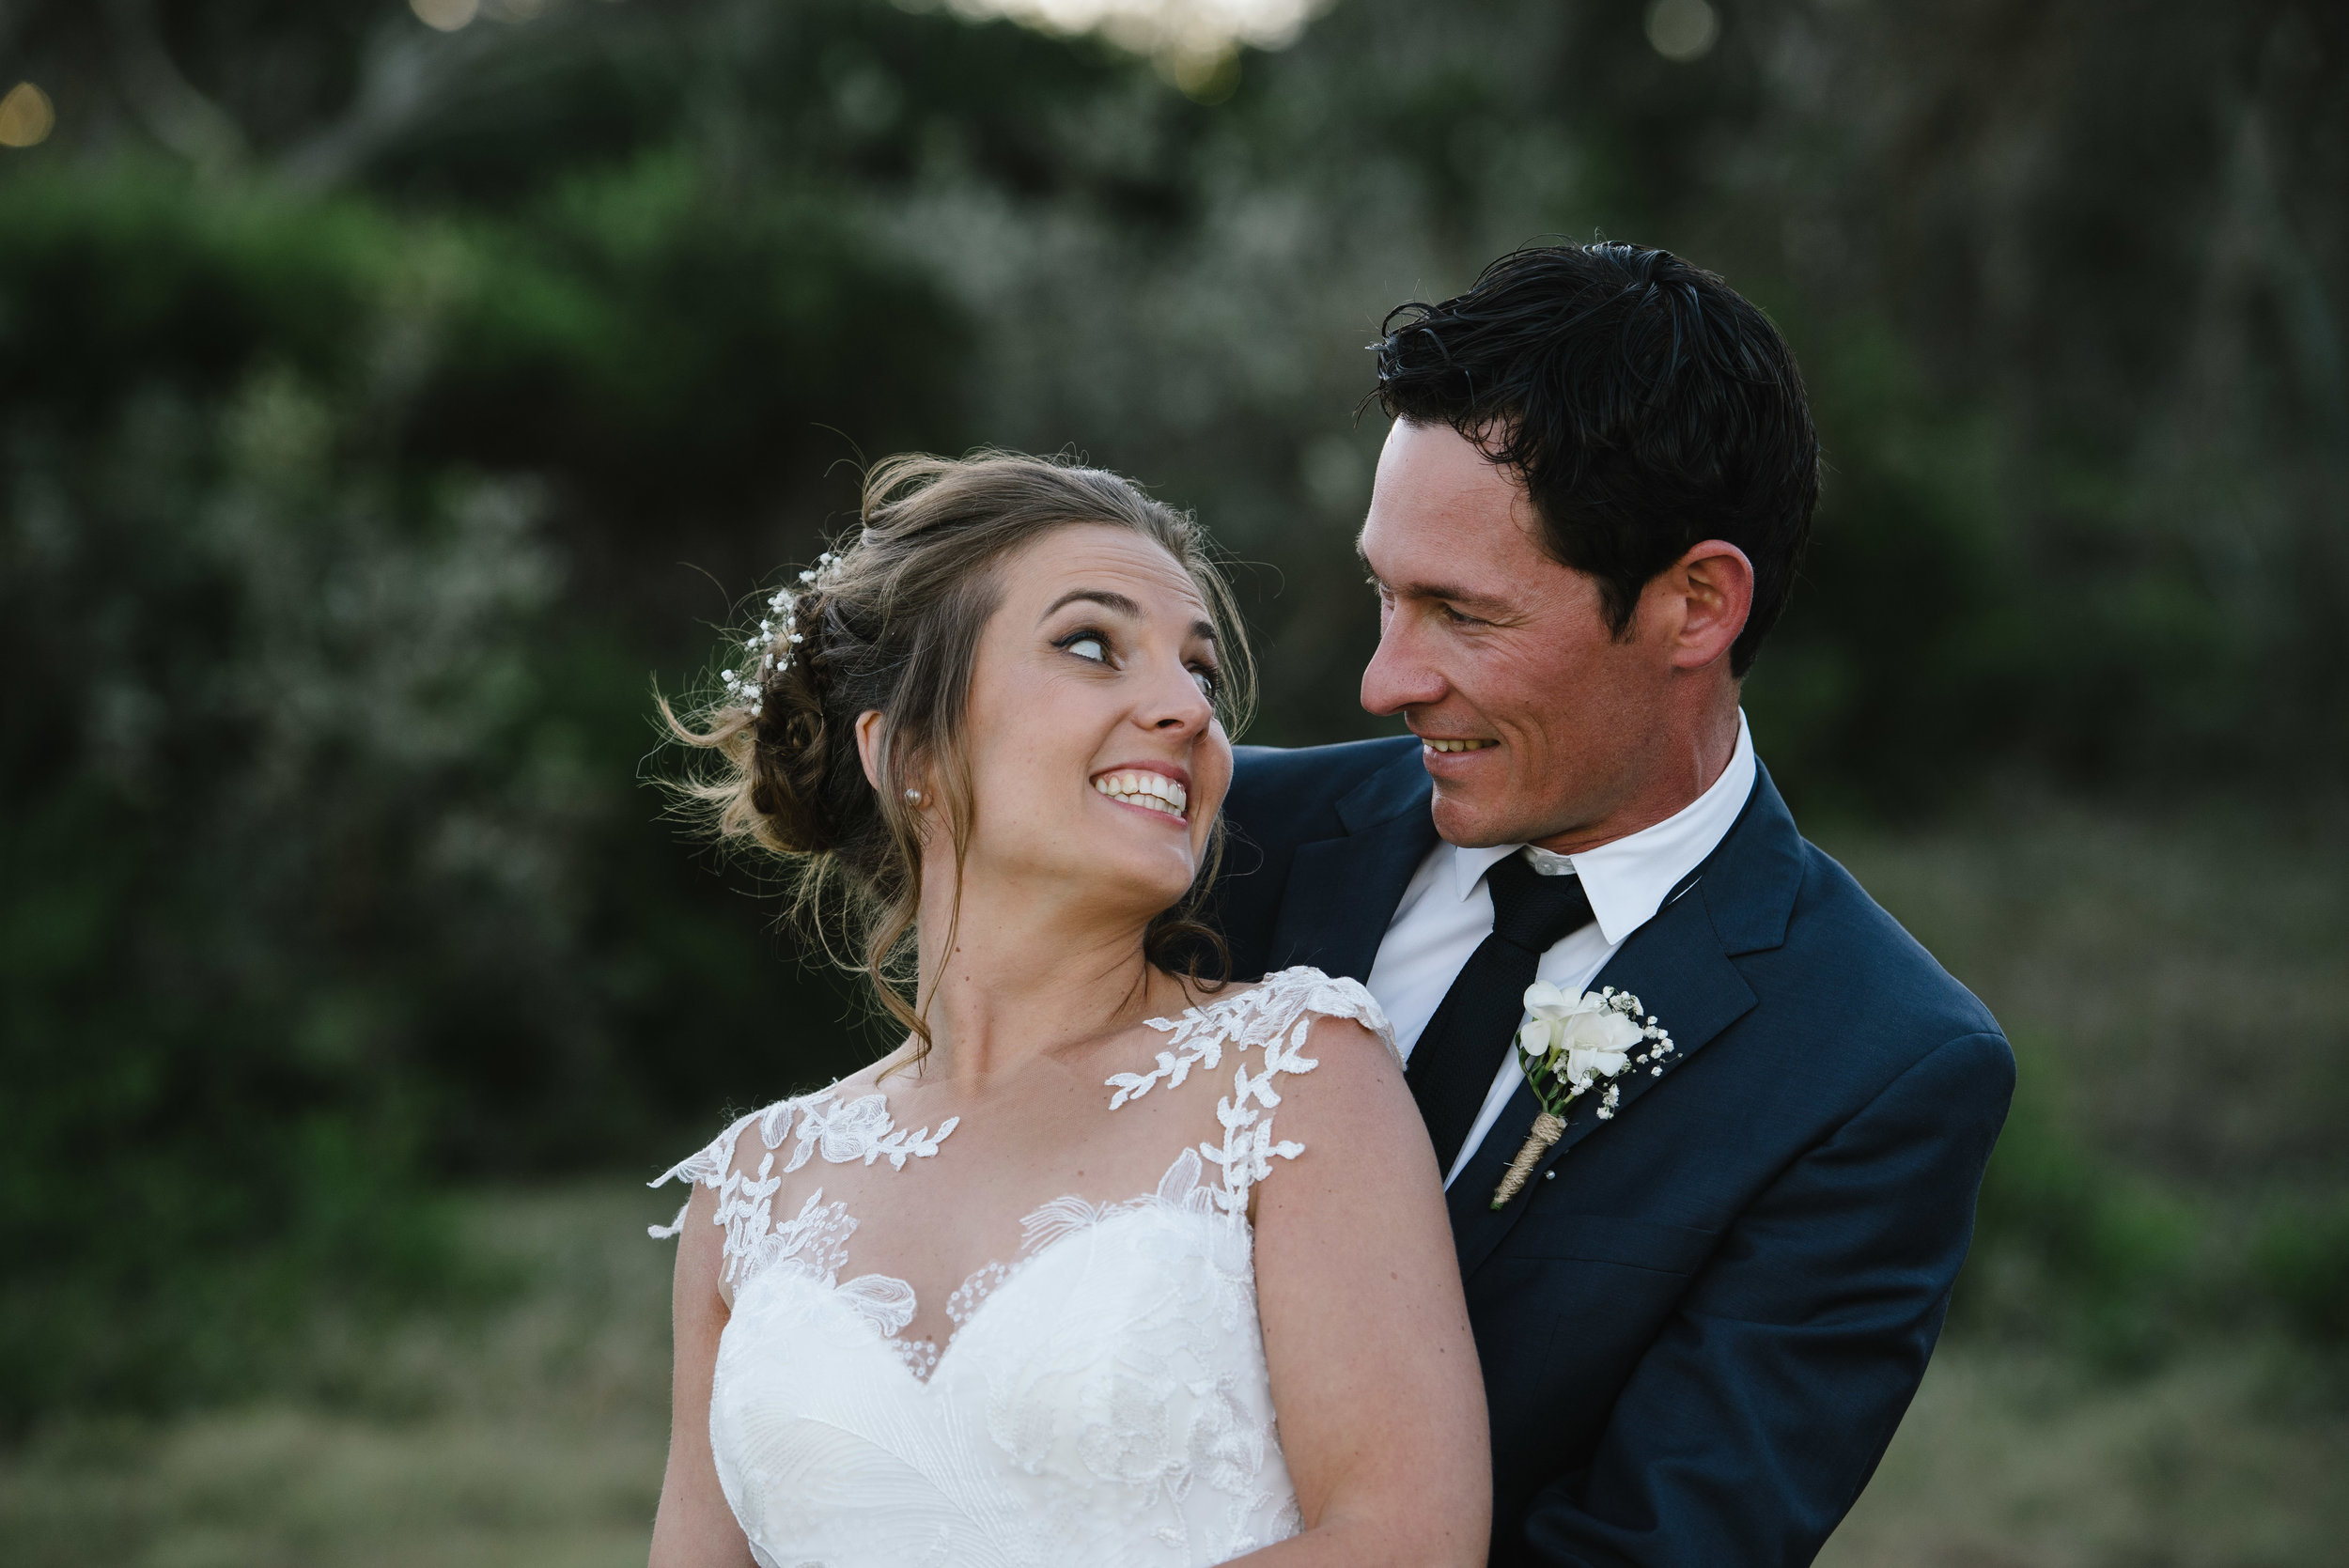 Am and Sam- skyla sage photography weddings, families, byron bay,tweed coast,kingscliff,cabarita,gold coast-511.jpg